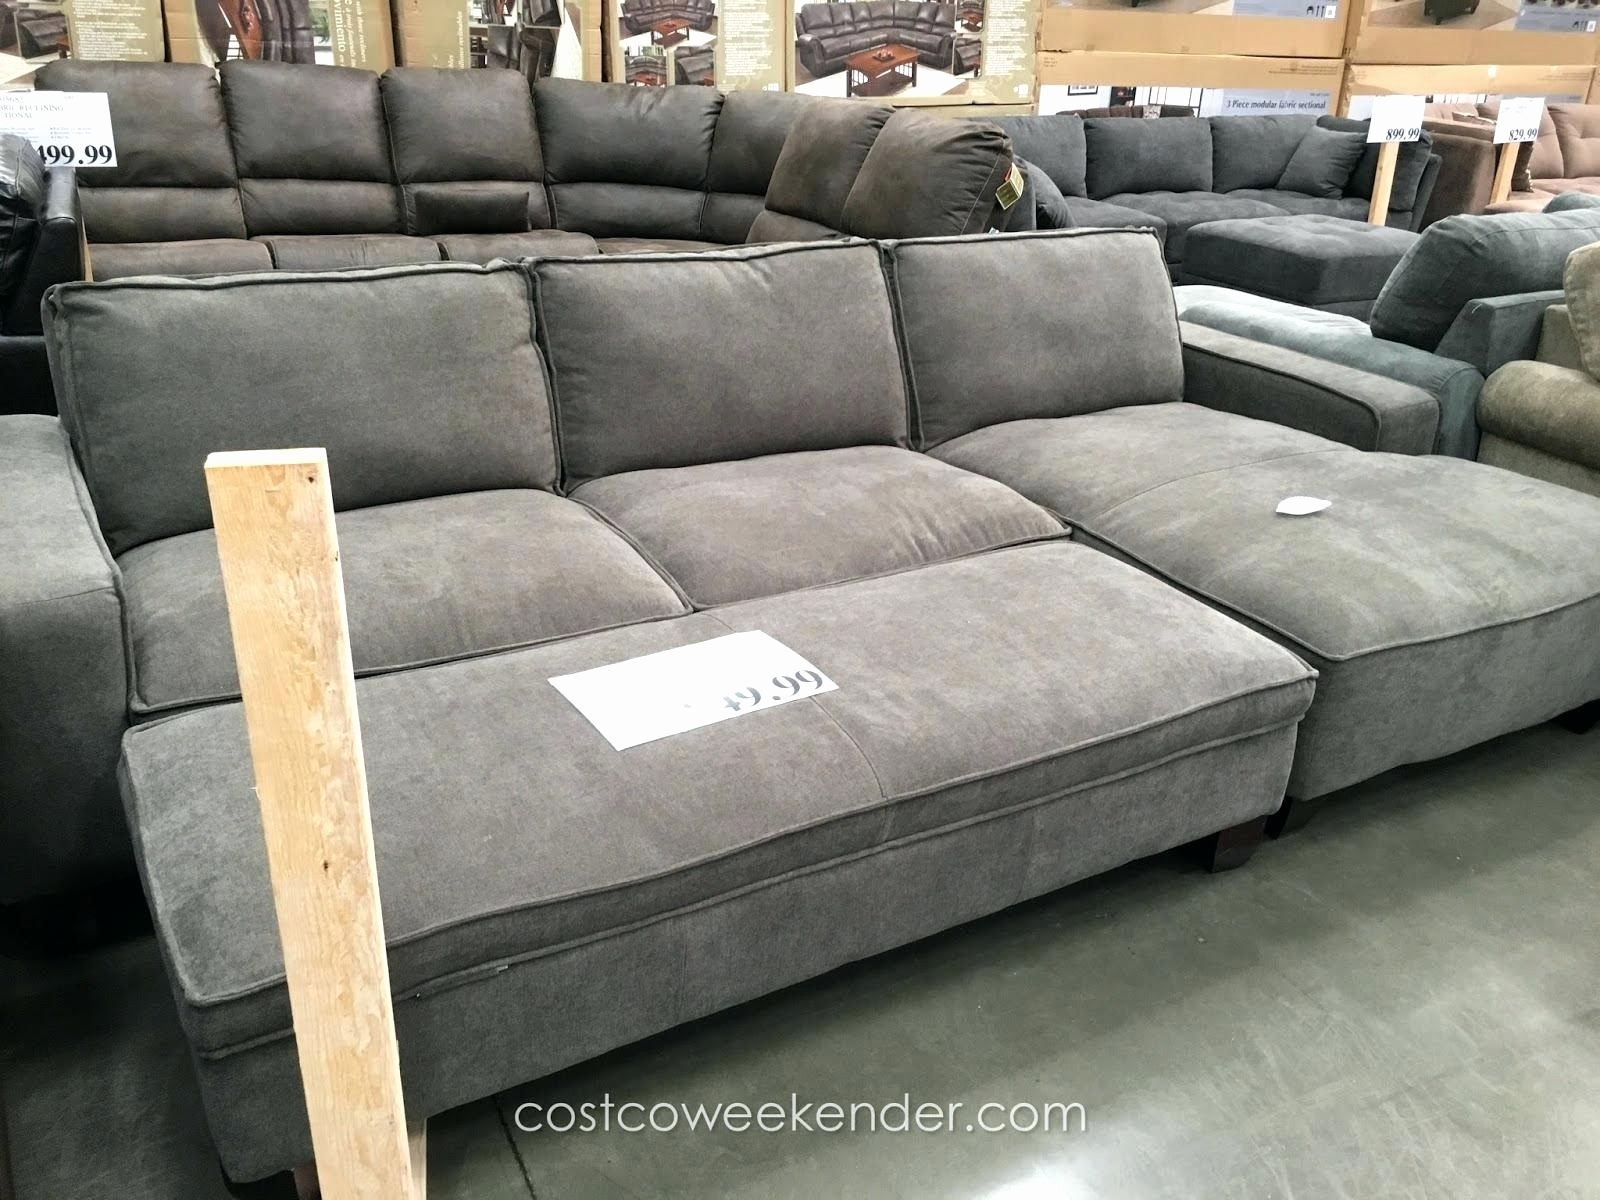 Beautiful 7 Piece Sectional Sofa Costco 2018 – Couches And Sofas Ideas Inside Sectional Sofas At Costco (View 4 of 15)